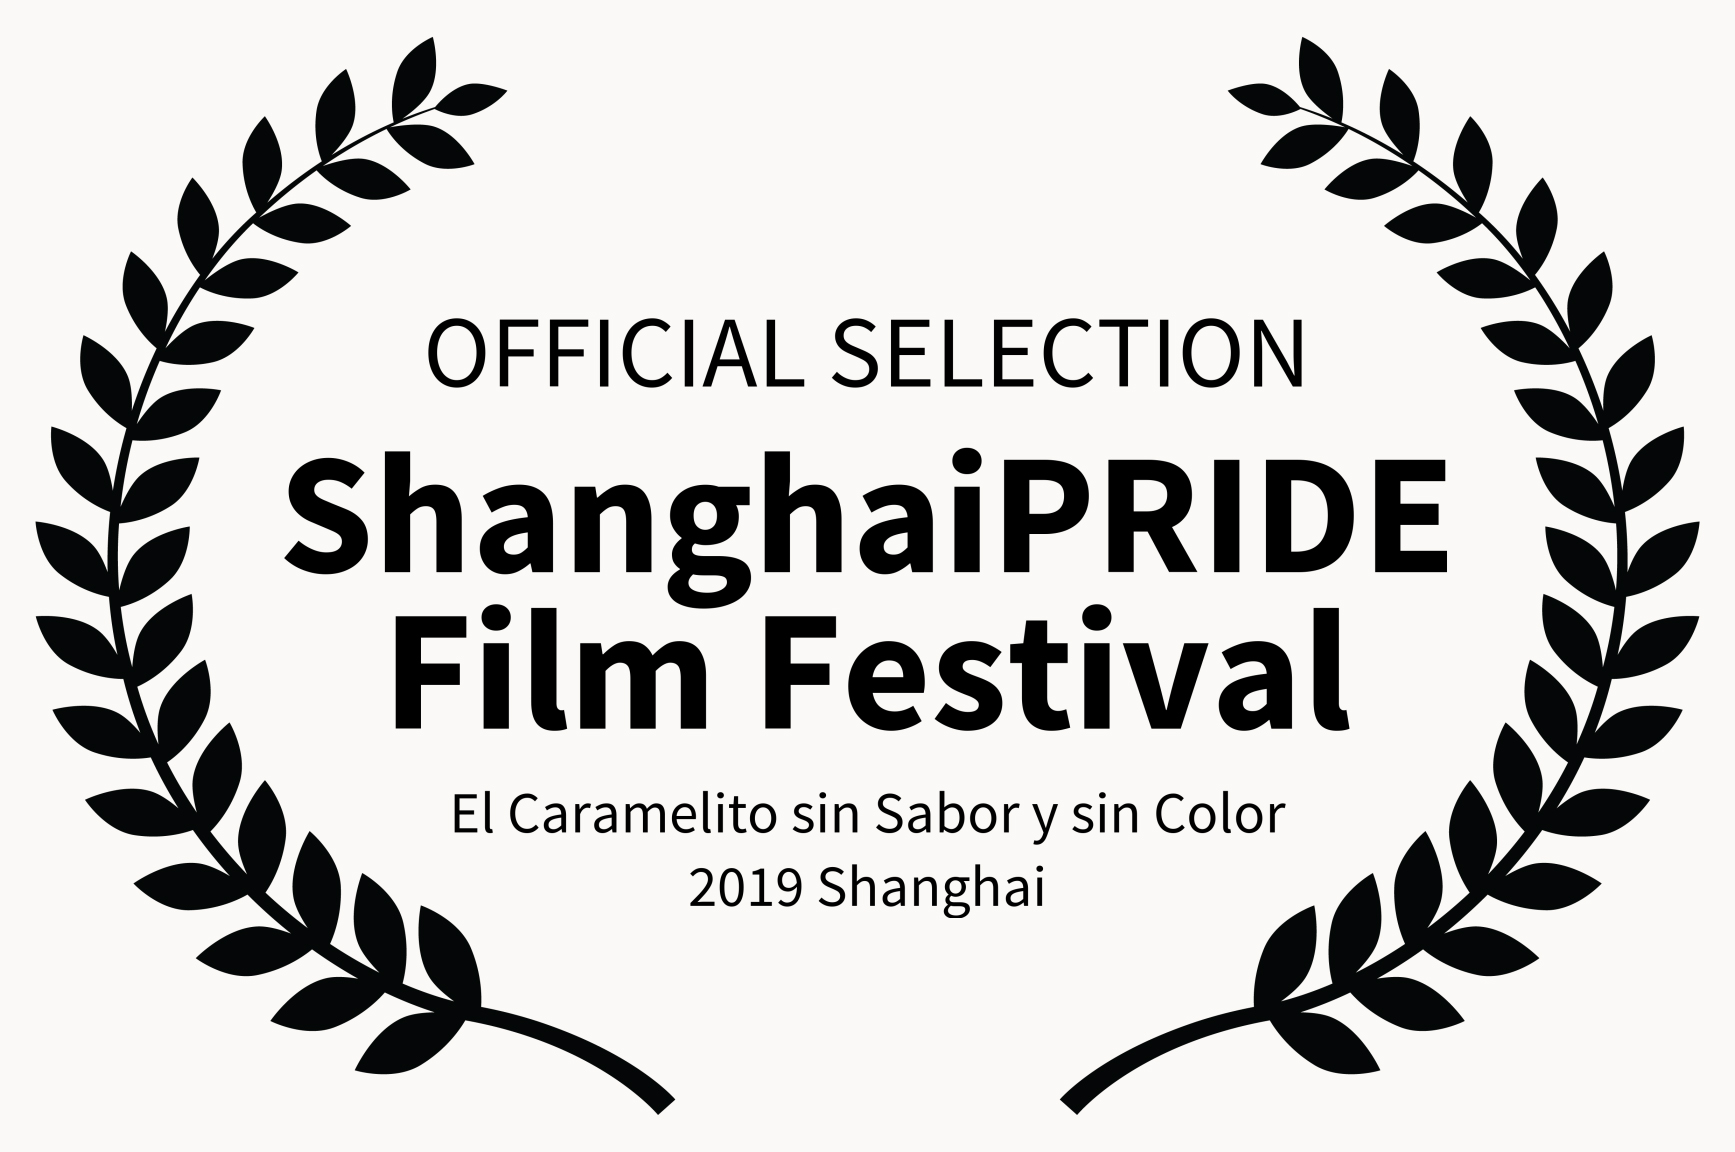 OFFICIAL SELECTION - ShanghaiPRIDE Film